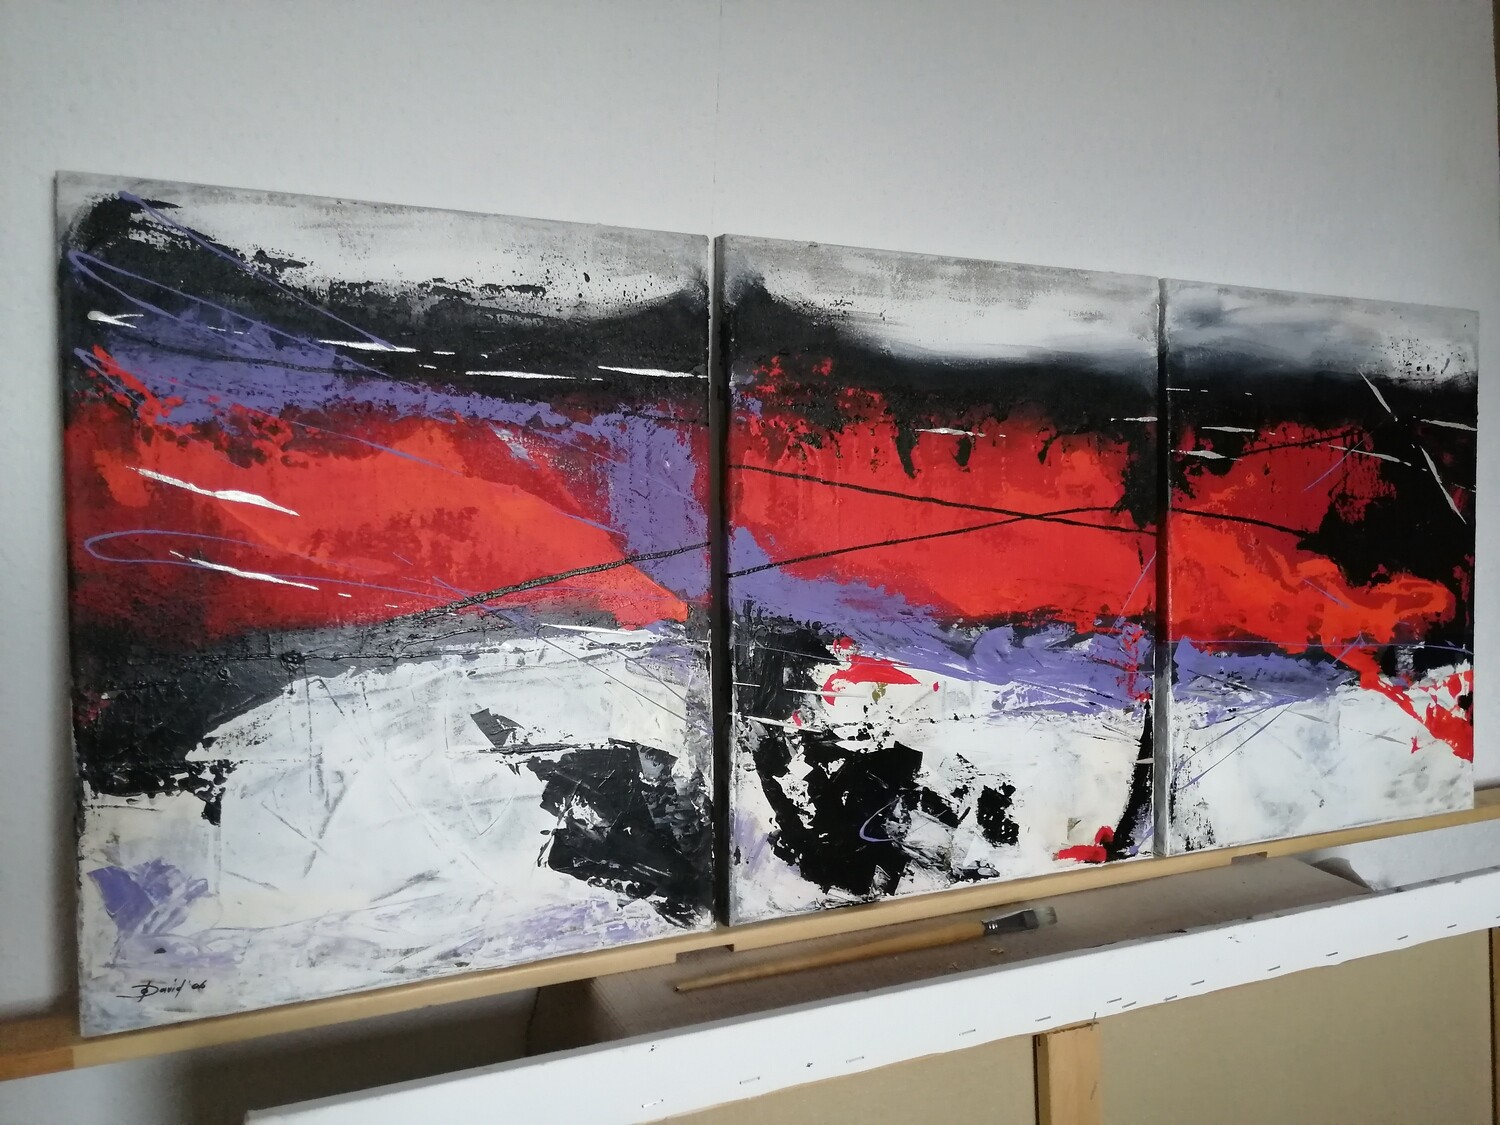 Purple River, Original abstraktes Acryl Gemälde, 120x50cm, 3-teilig